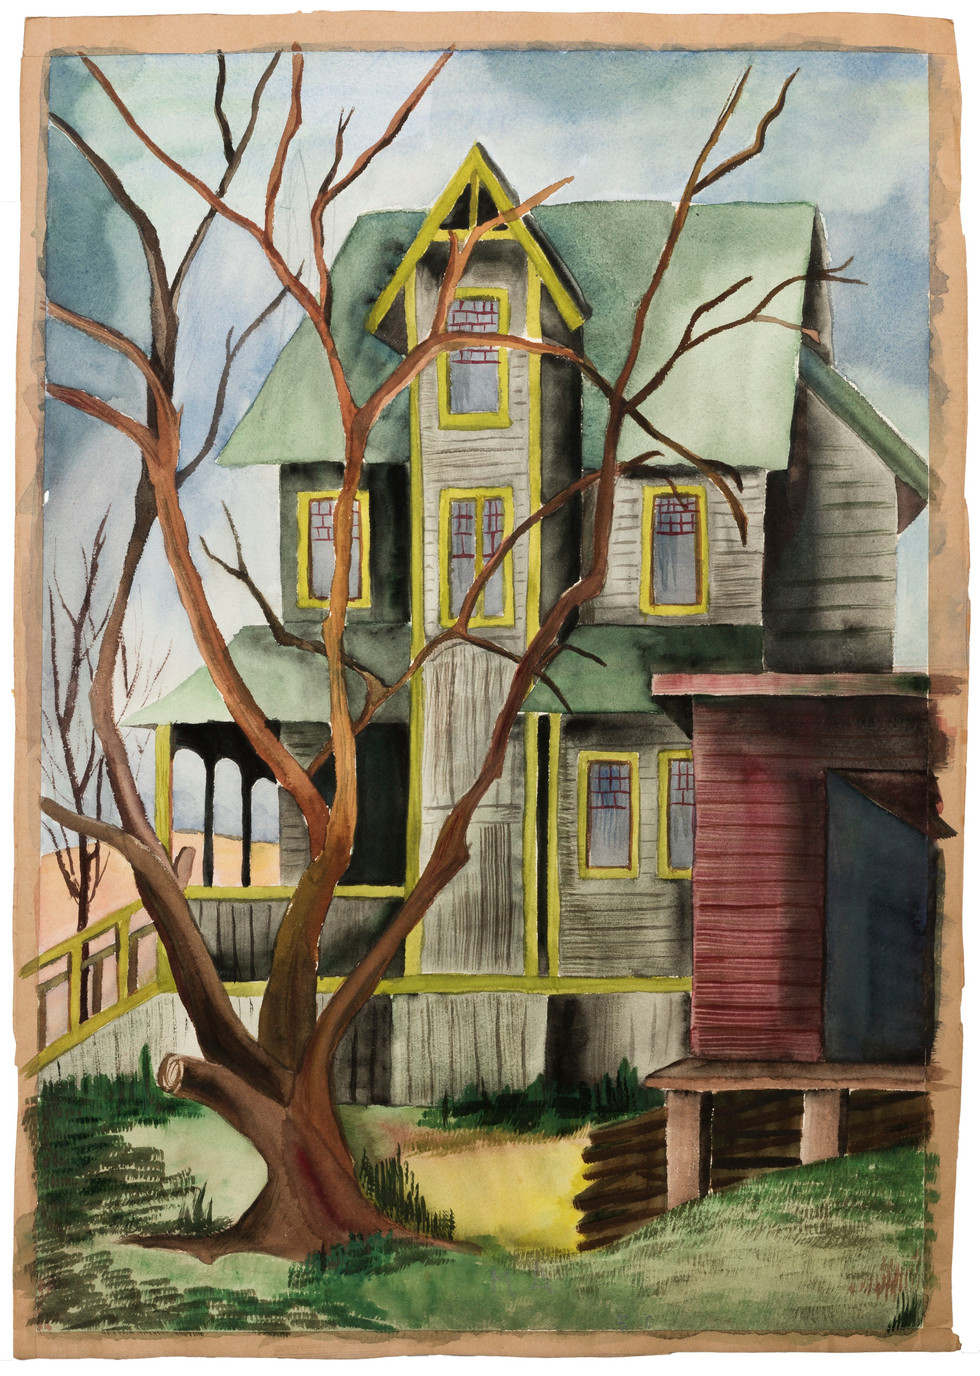 Untitled - house with green roof and a bare tree